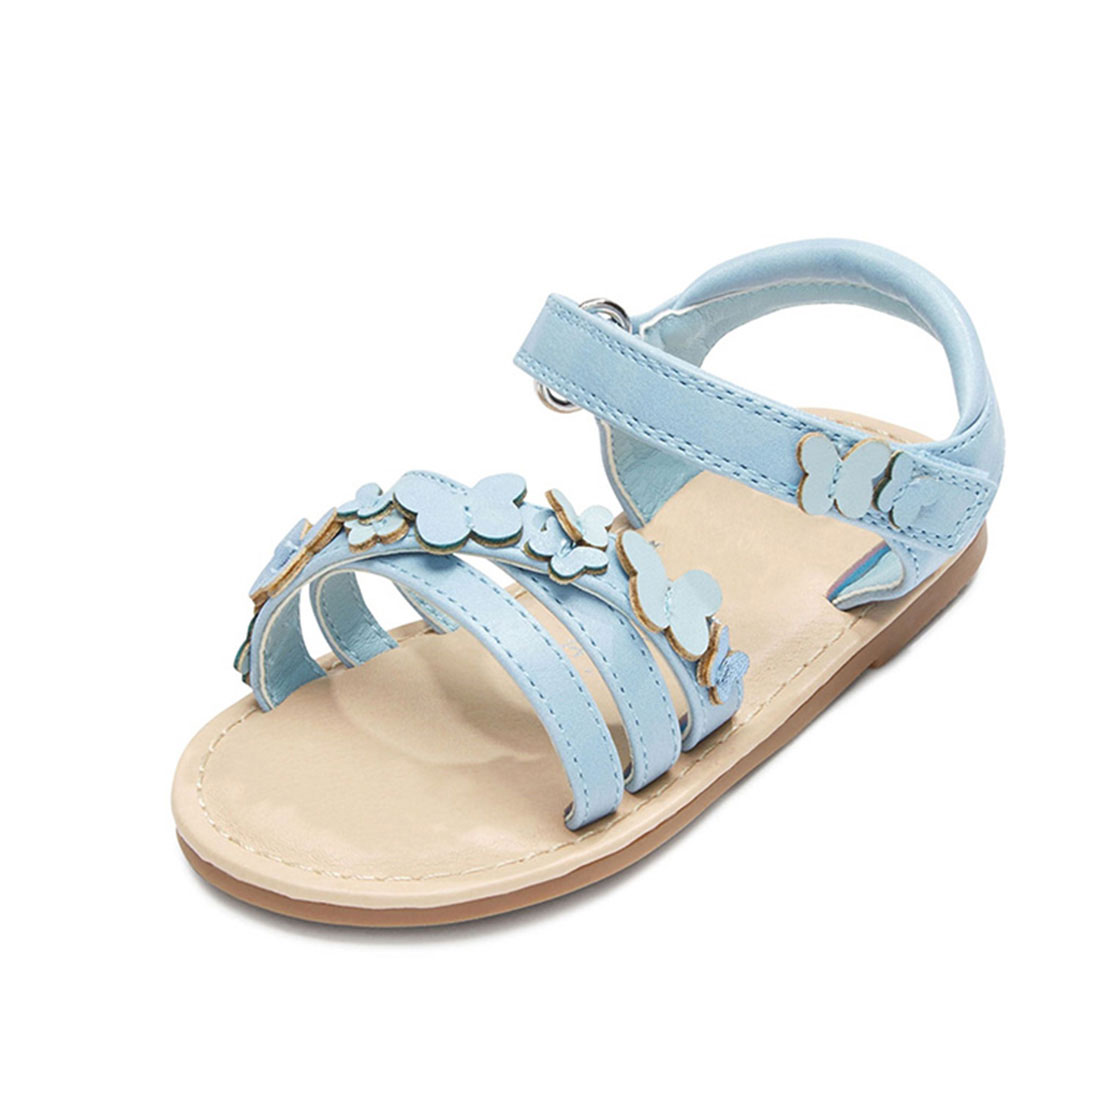 Leather light blue flat open toe fashion butterfly little girls sandals shoes